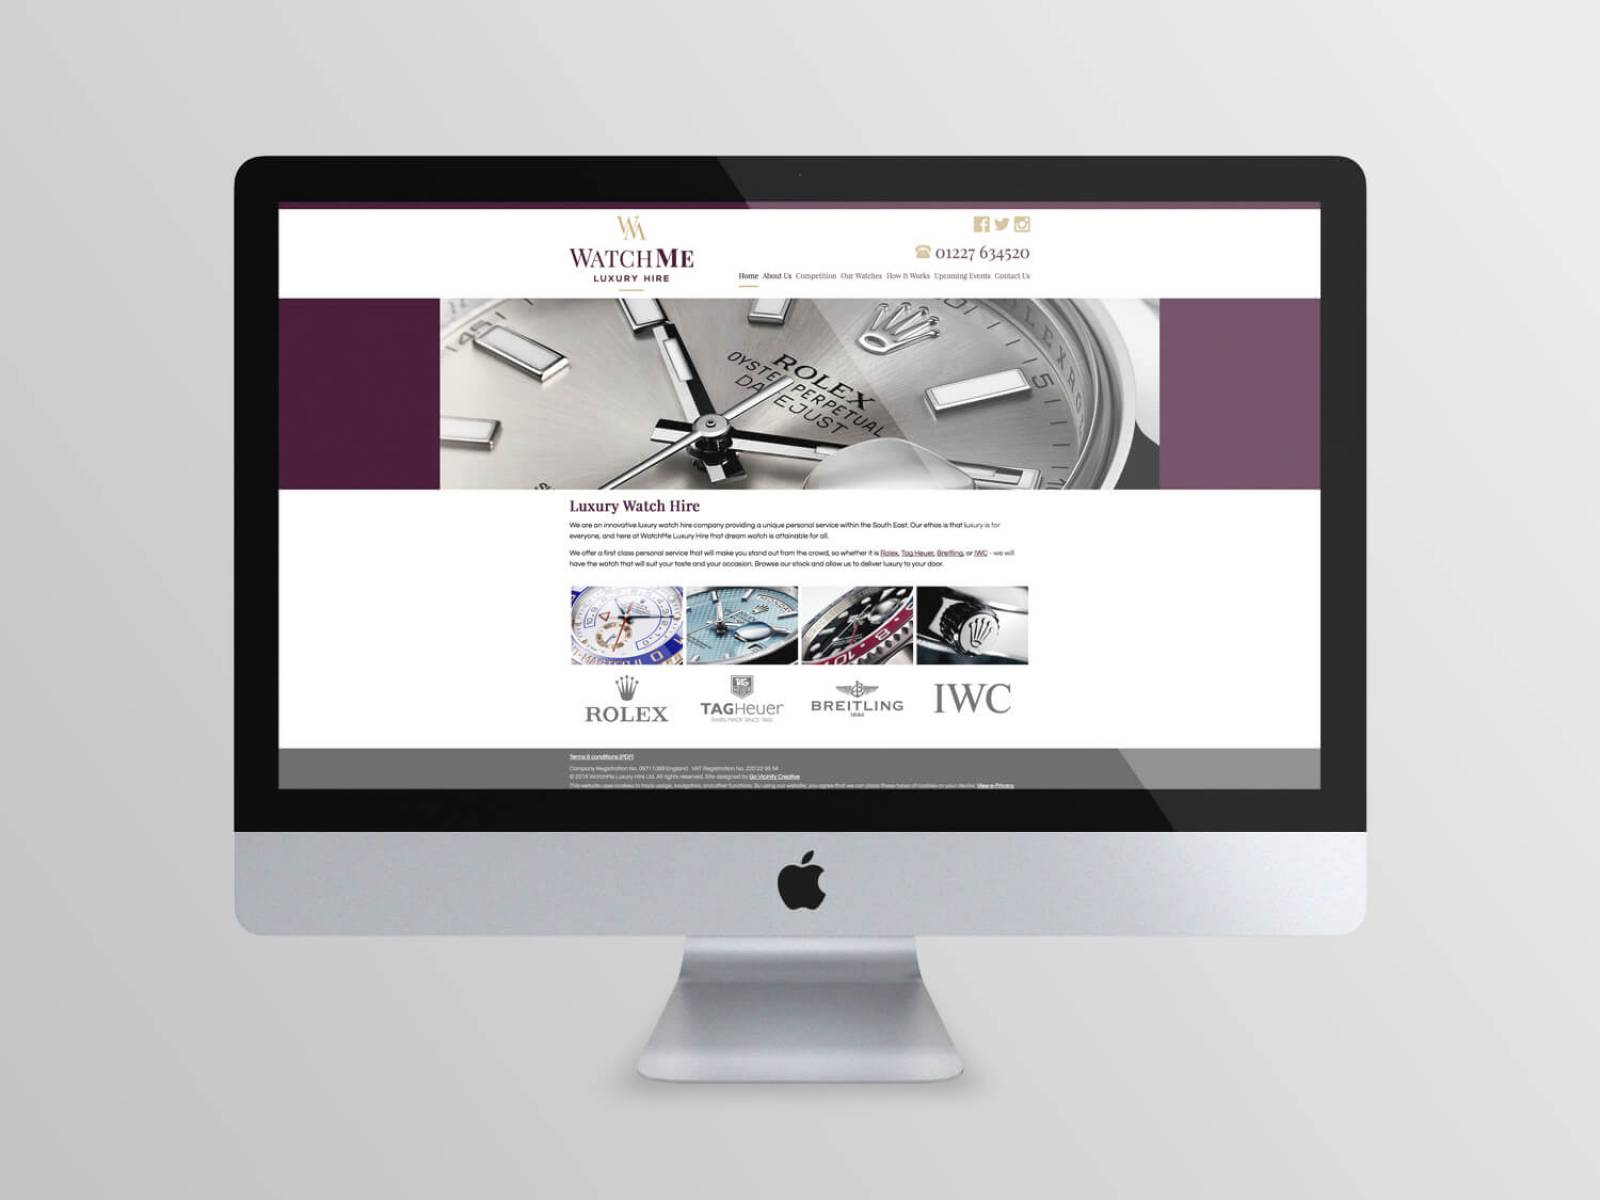 Watchme-website-design-agency-graphic-design-canterbury.jpg